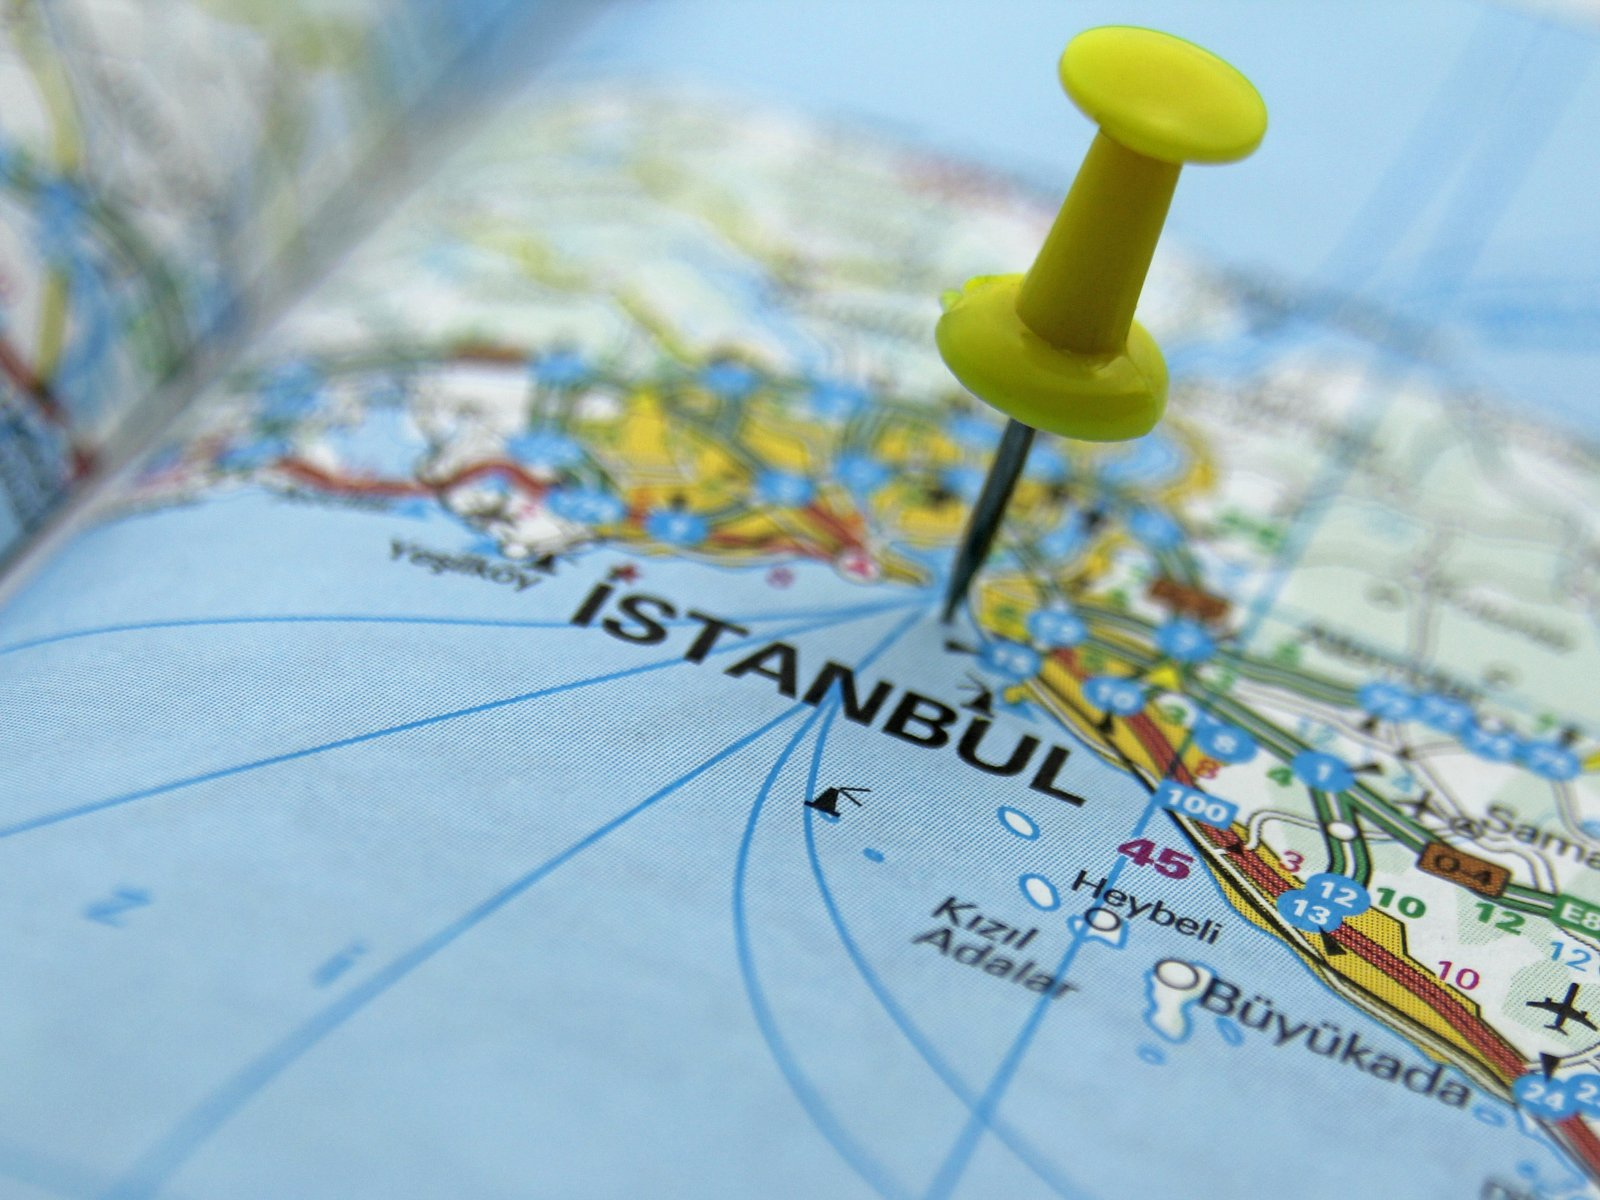 Places near Istanbul